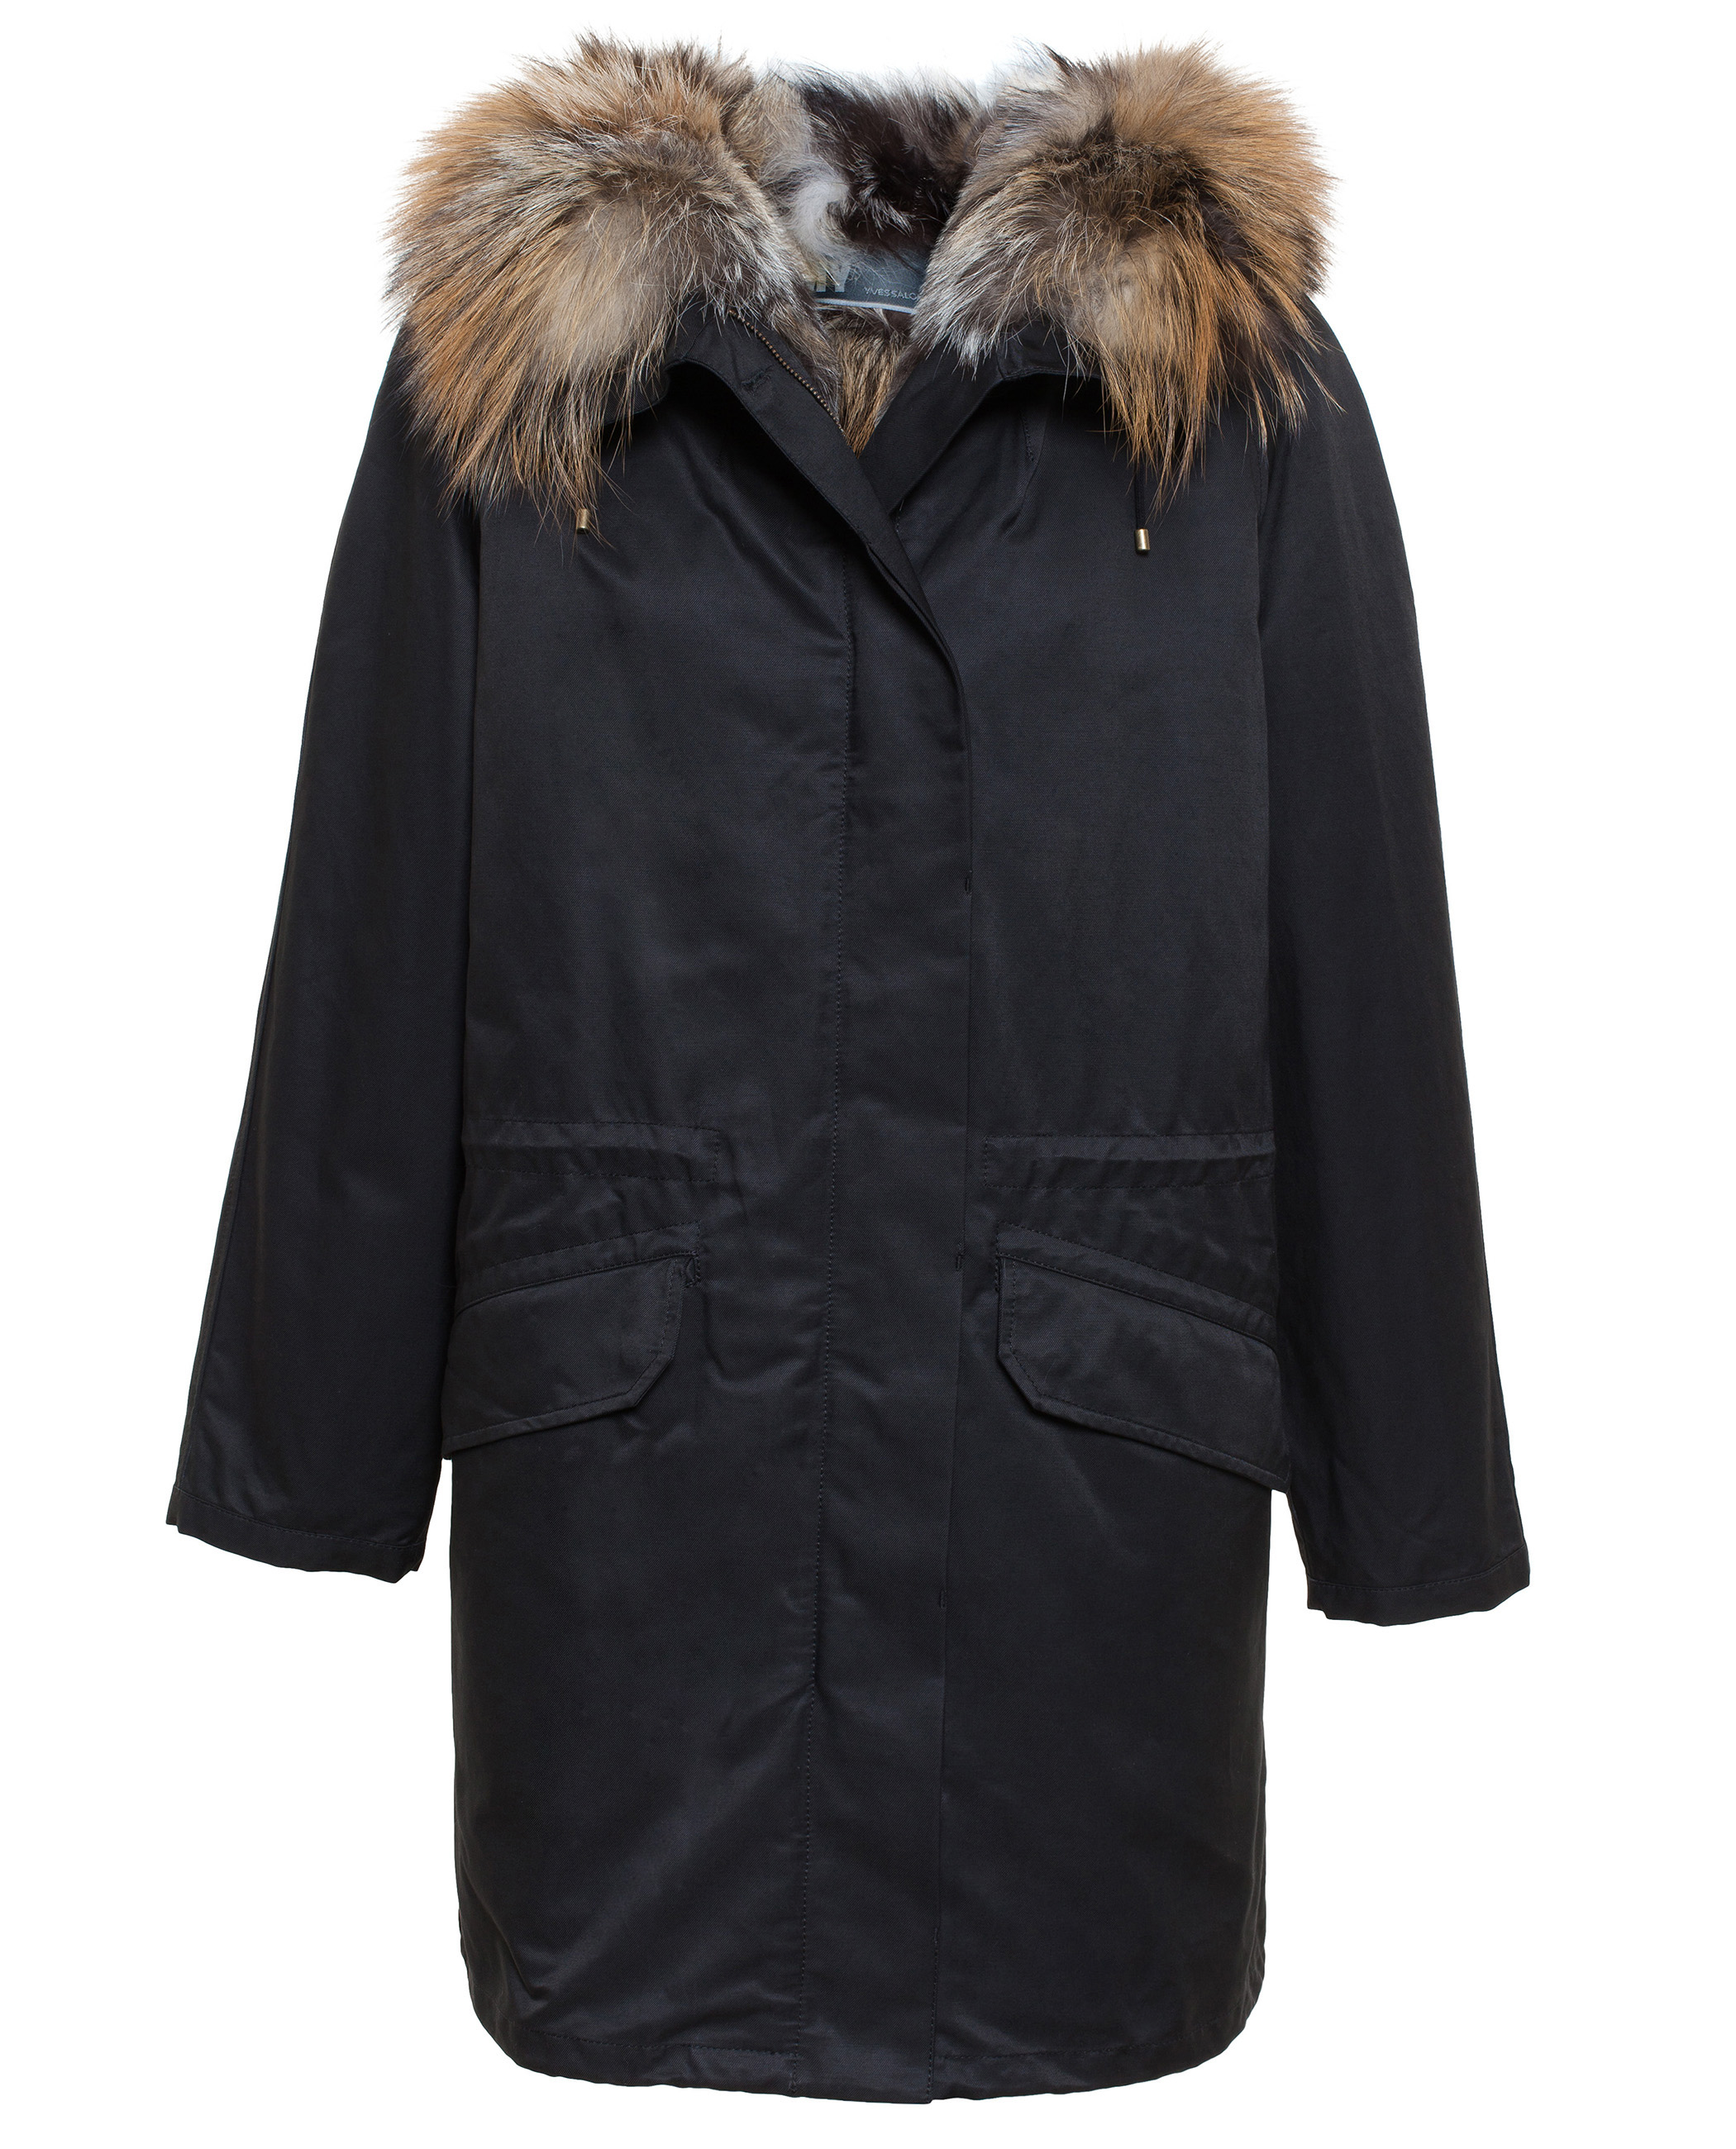 Yves salomon Fox Fur Lined Cotton Parka in Black | Lyst